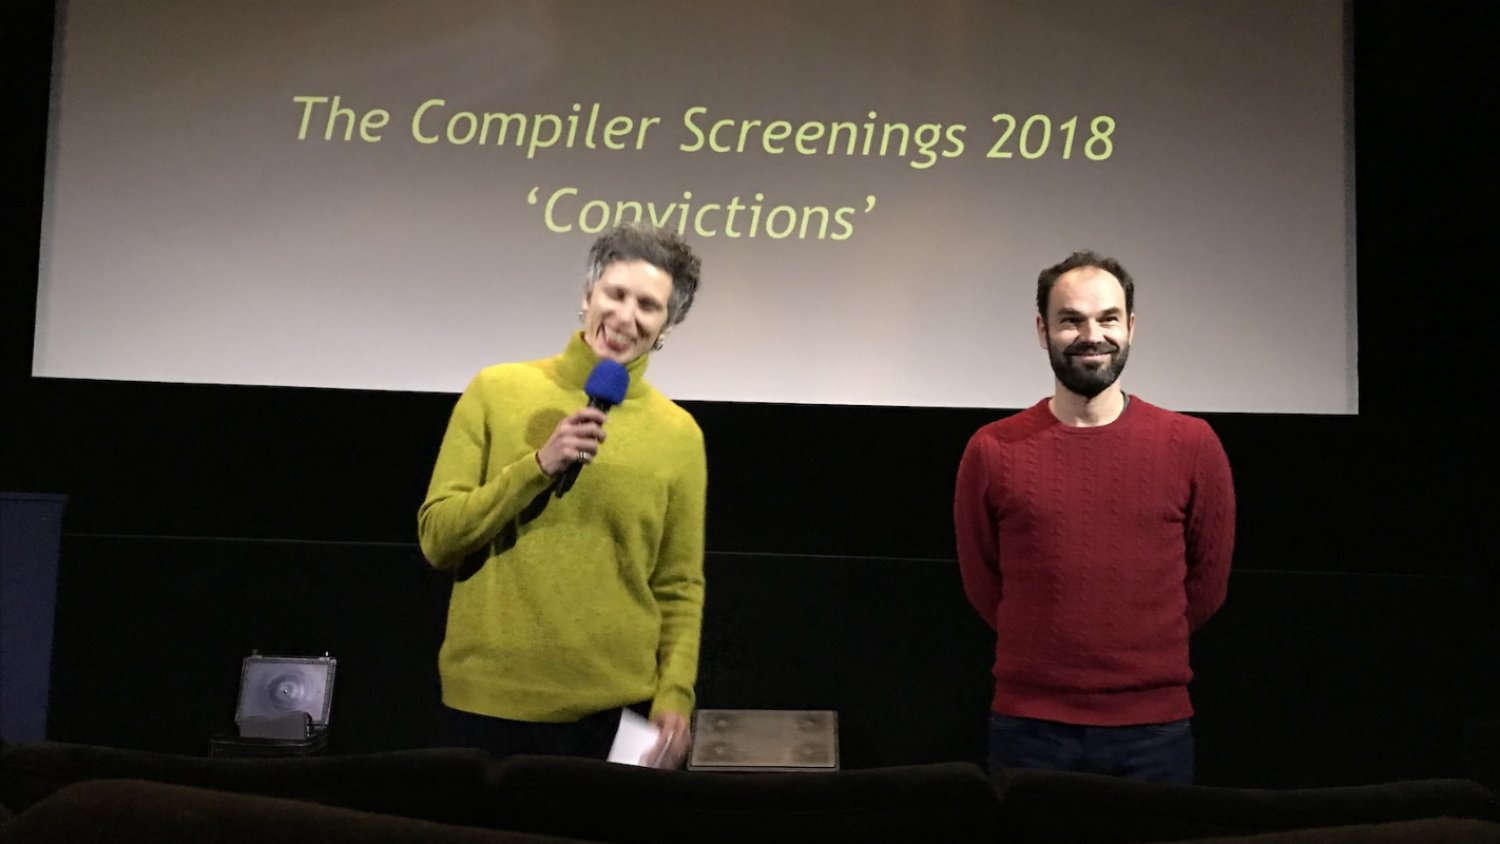 The Compiler Screenings 2018